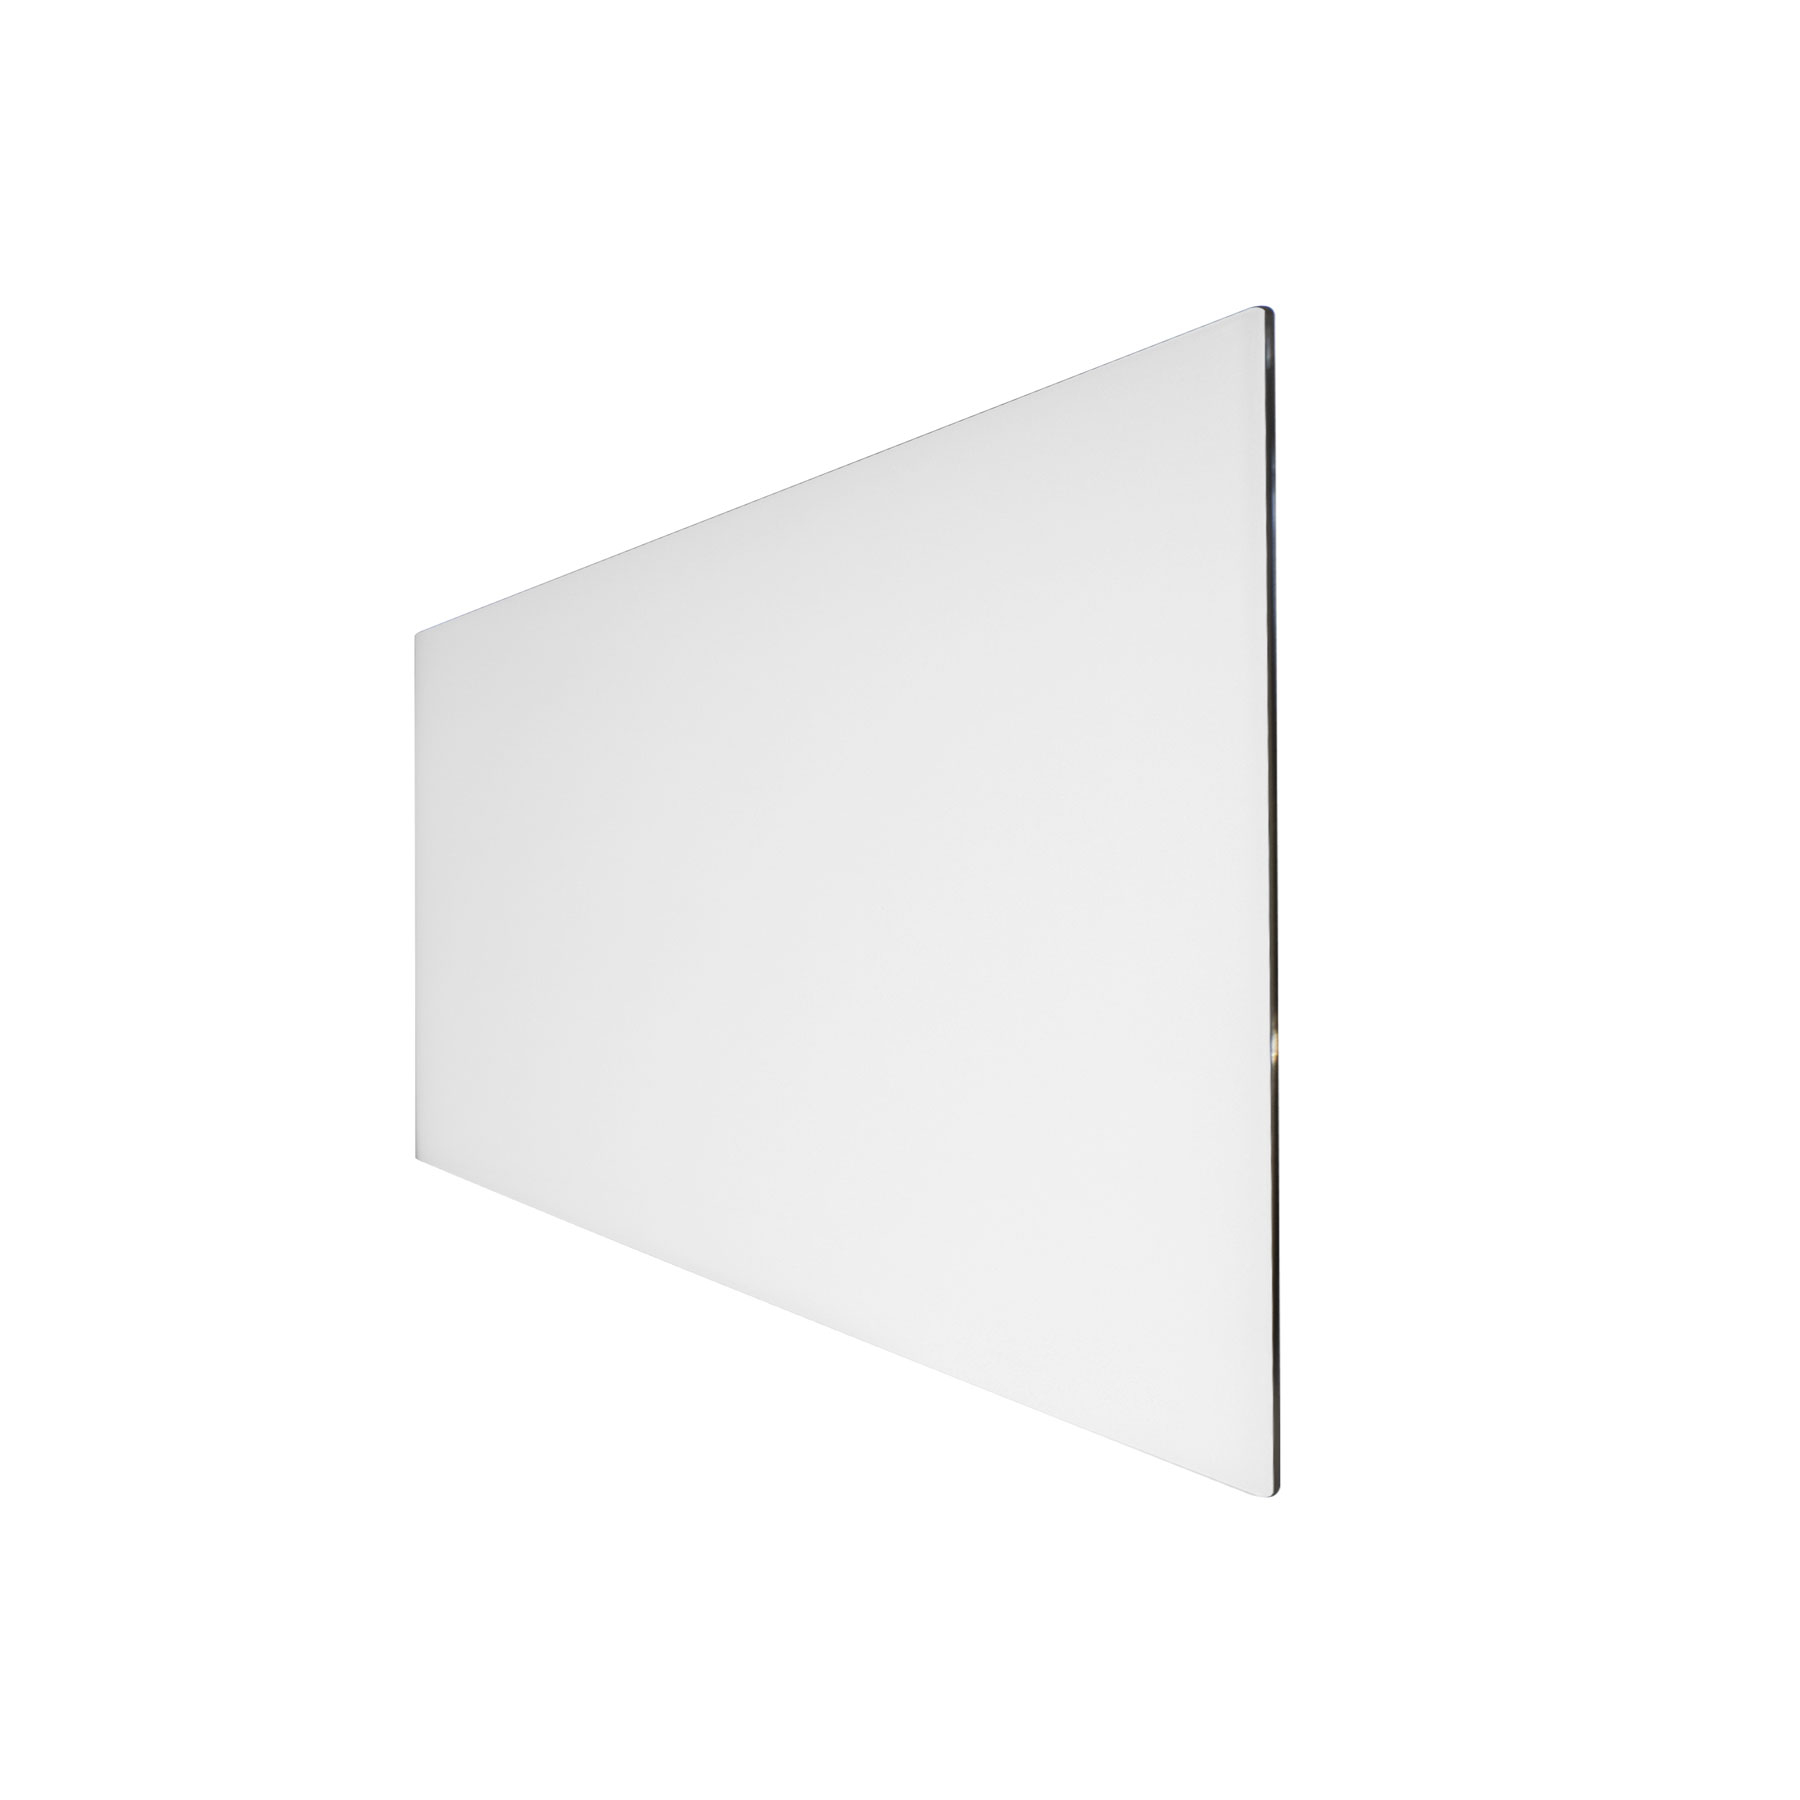 Technotherm Design Glass - White 454mm